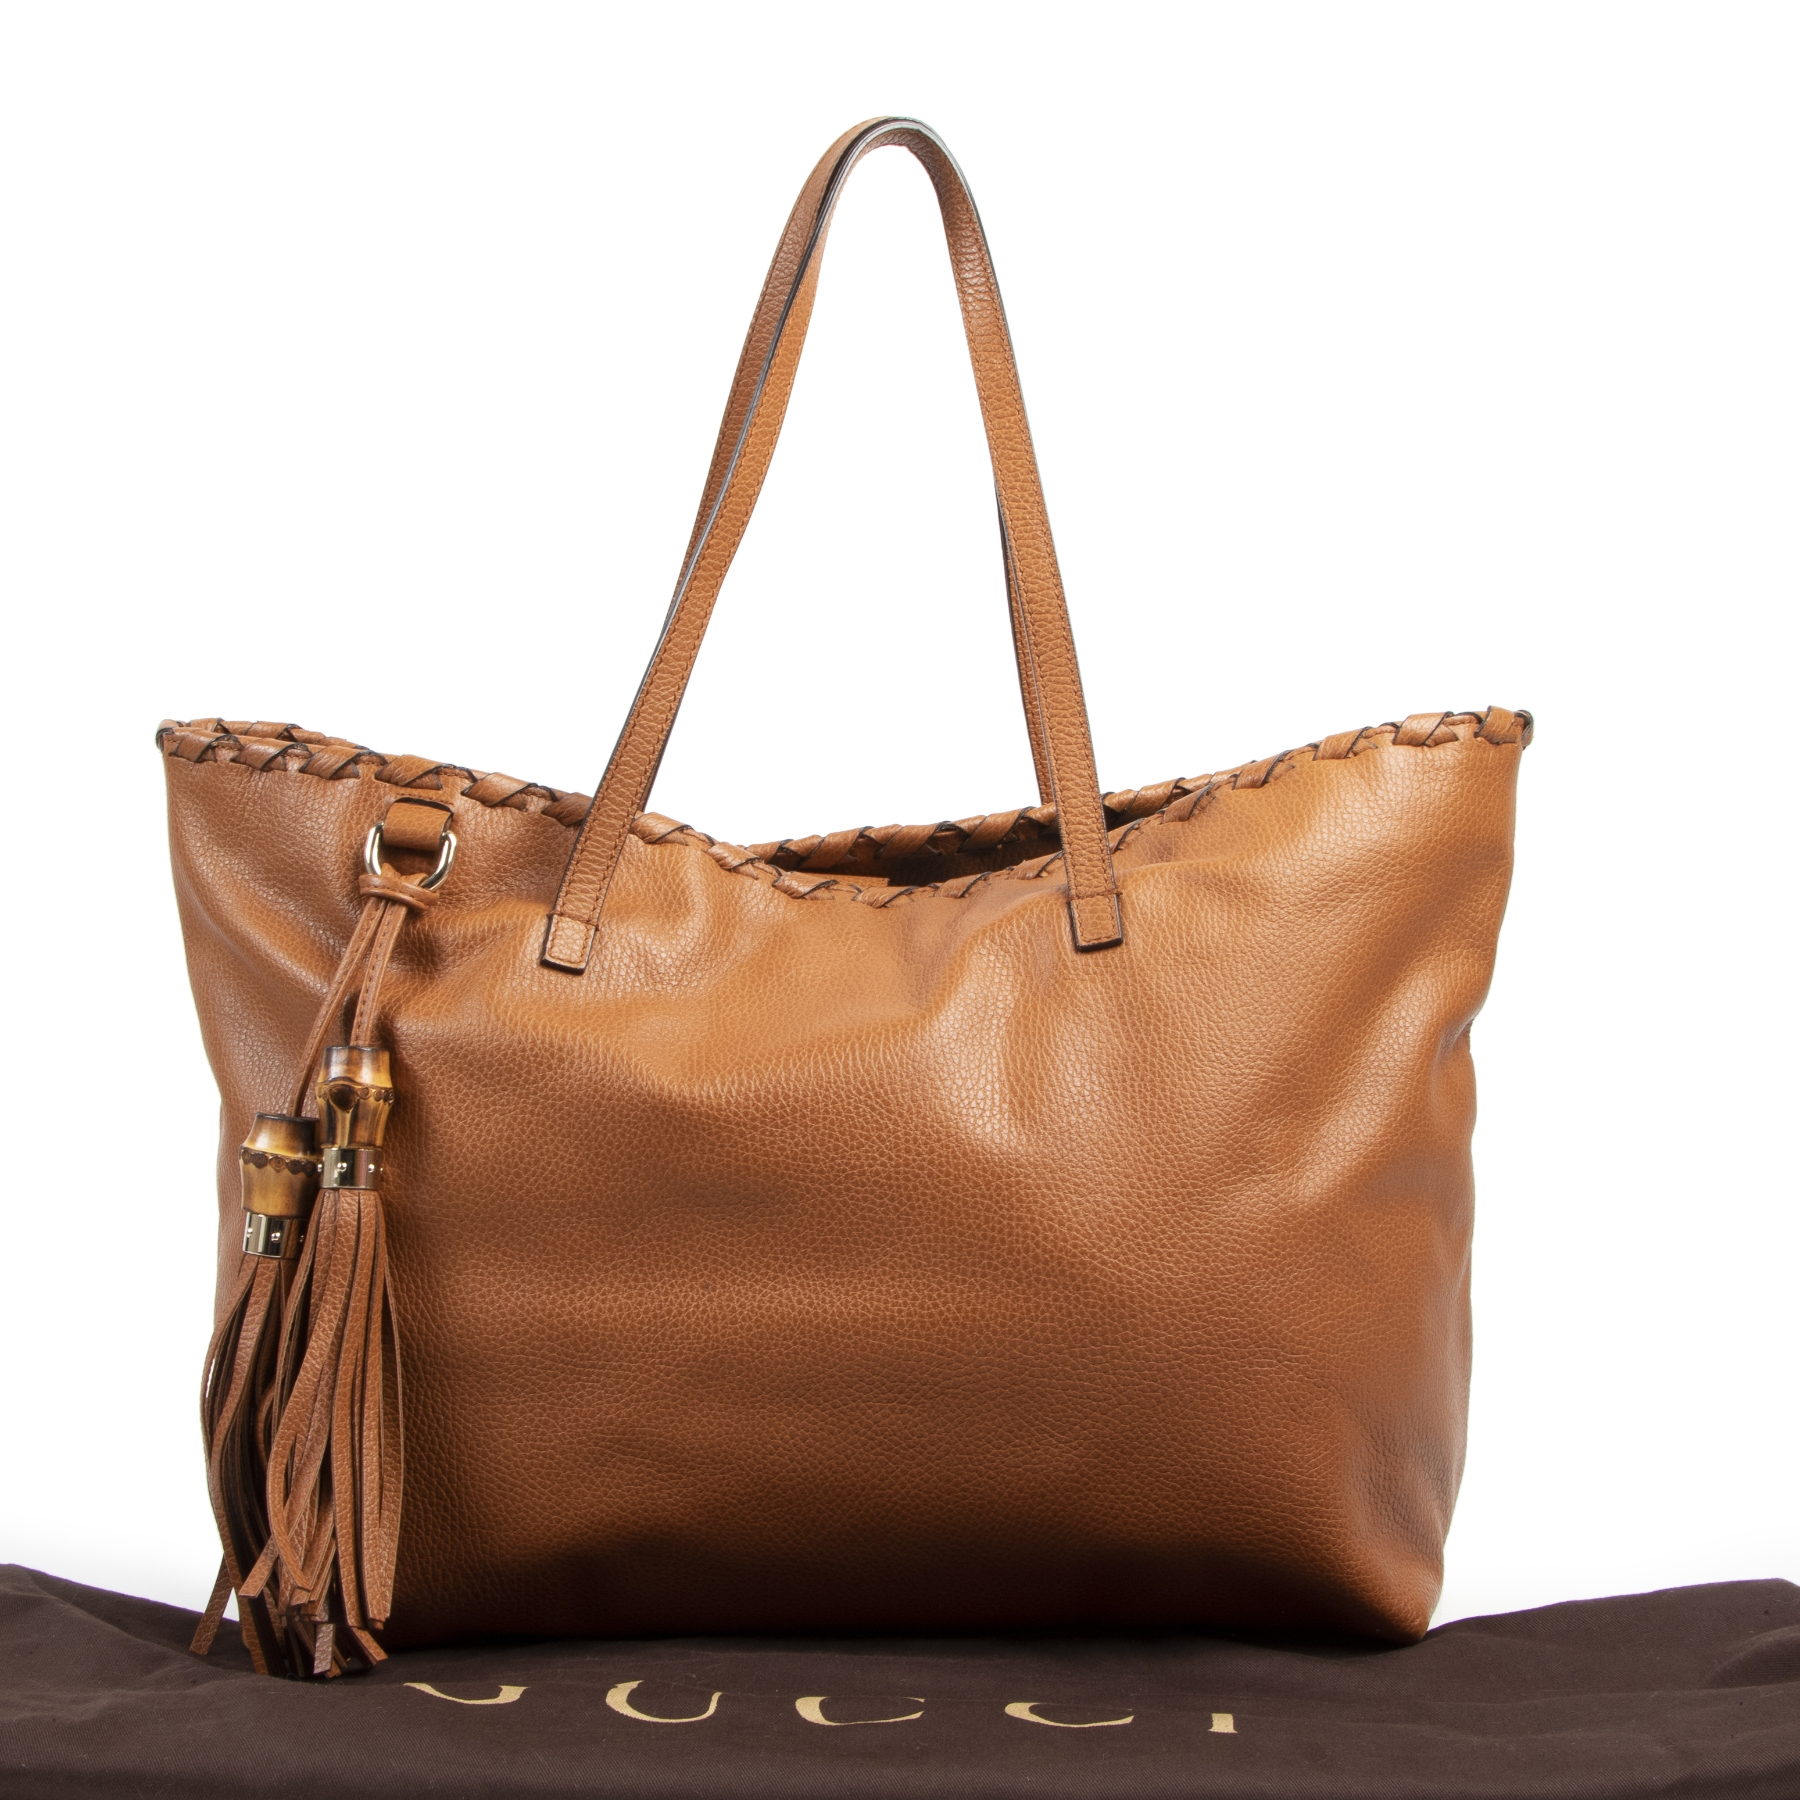 koop veilig online Gucci Cognac Pebbled Leather Bamboo Tassel Tote Bag